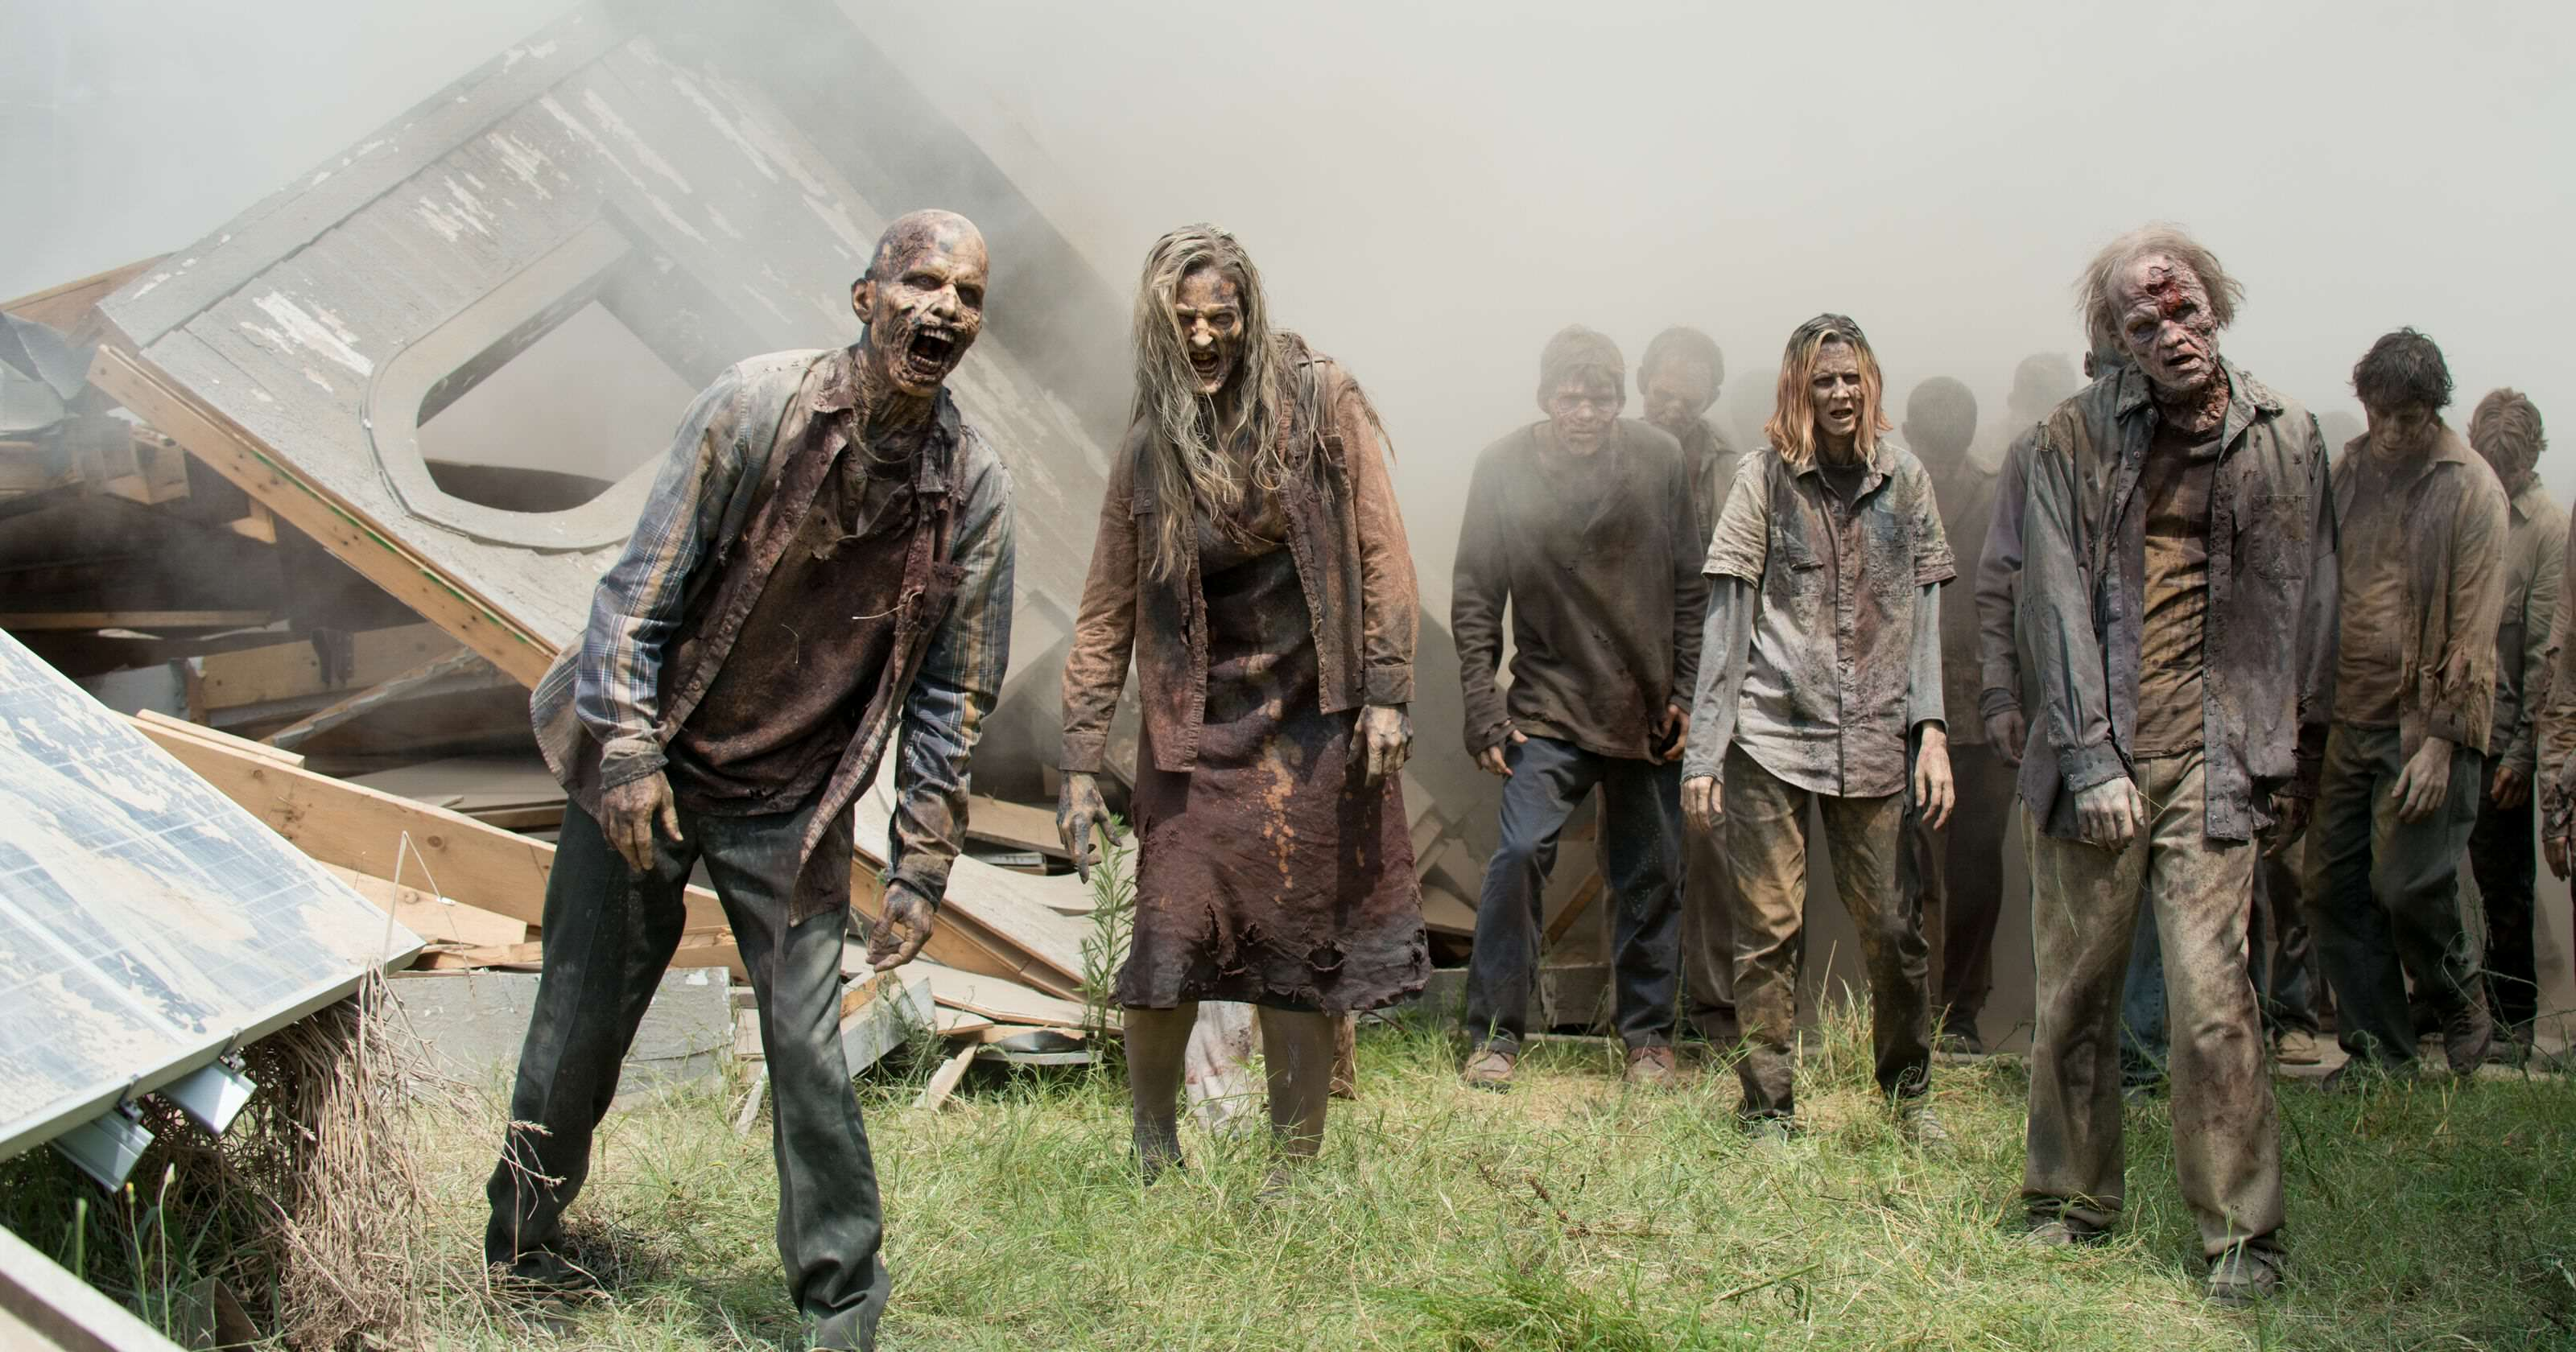 635991641108039150-The-Walking-Dead-1